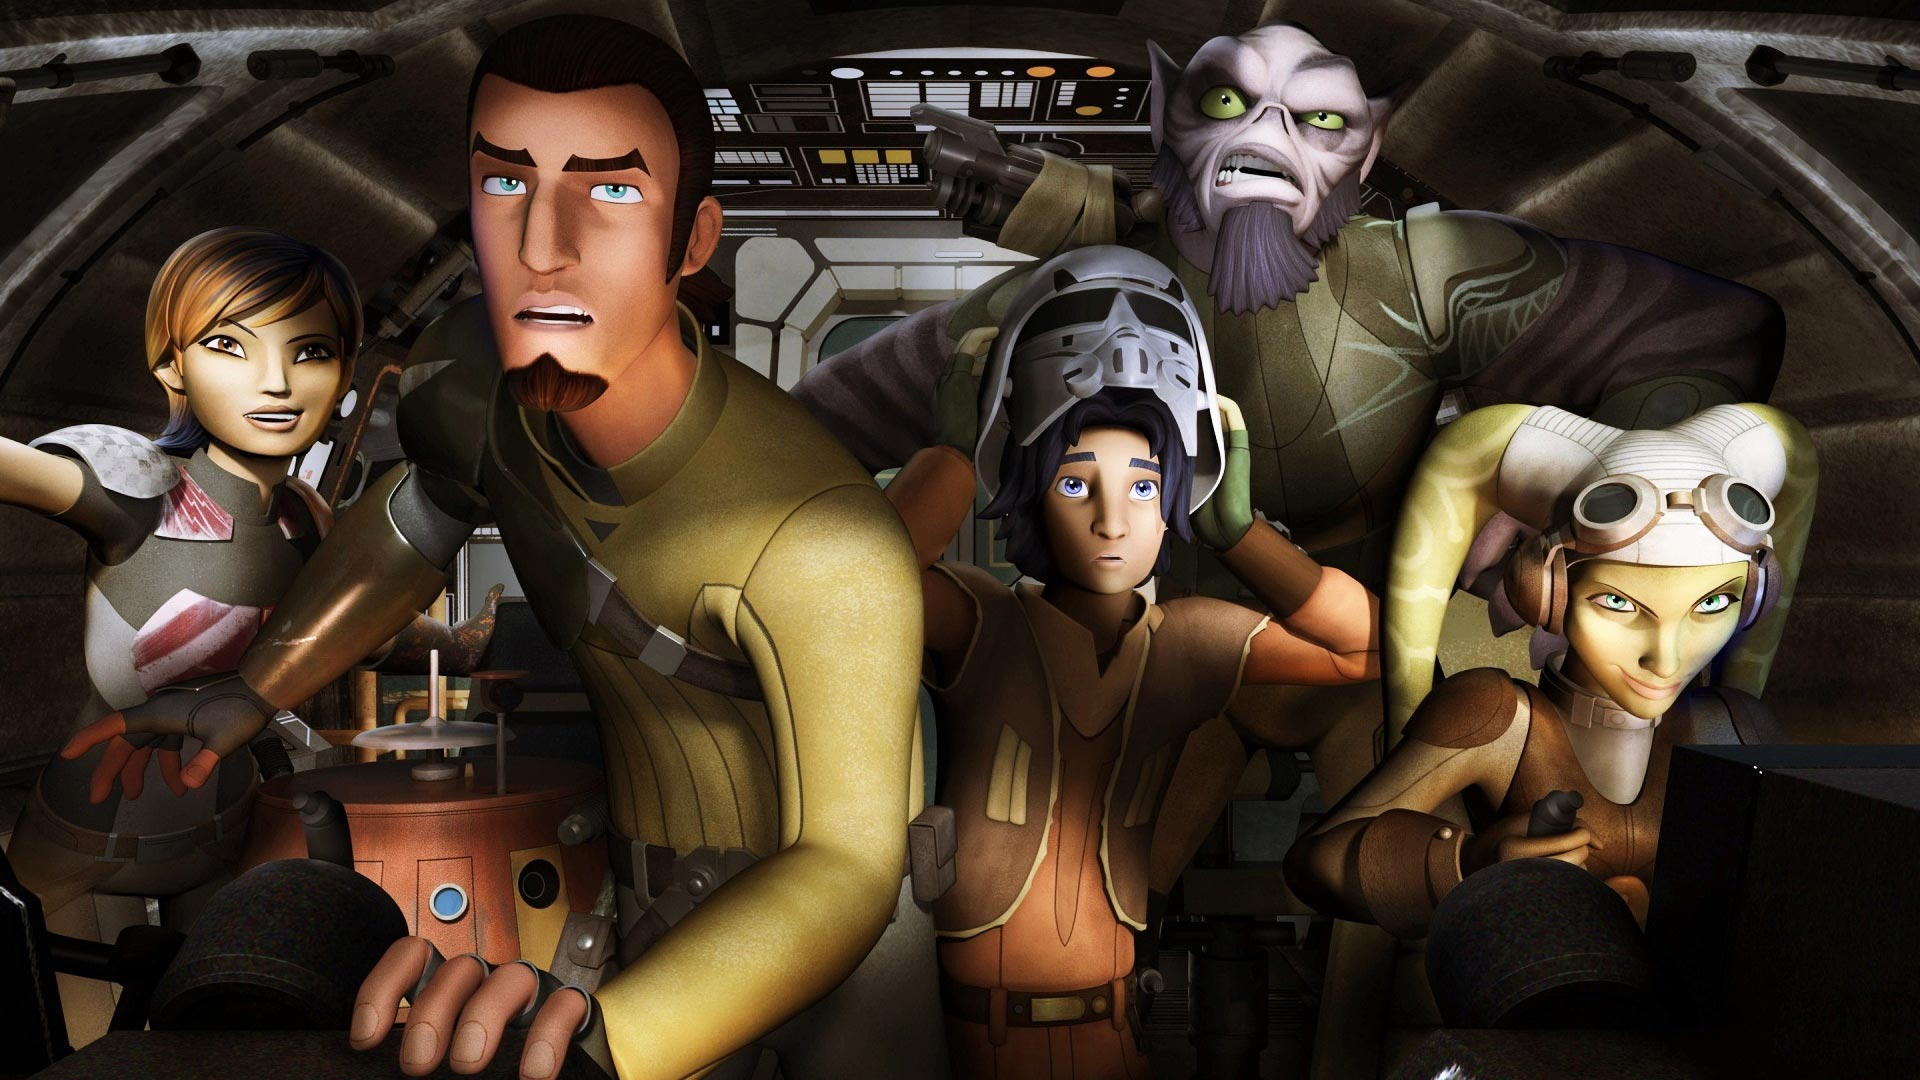 Star Wars Rebels Theme For Windows 10 8 7